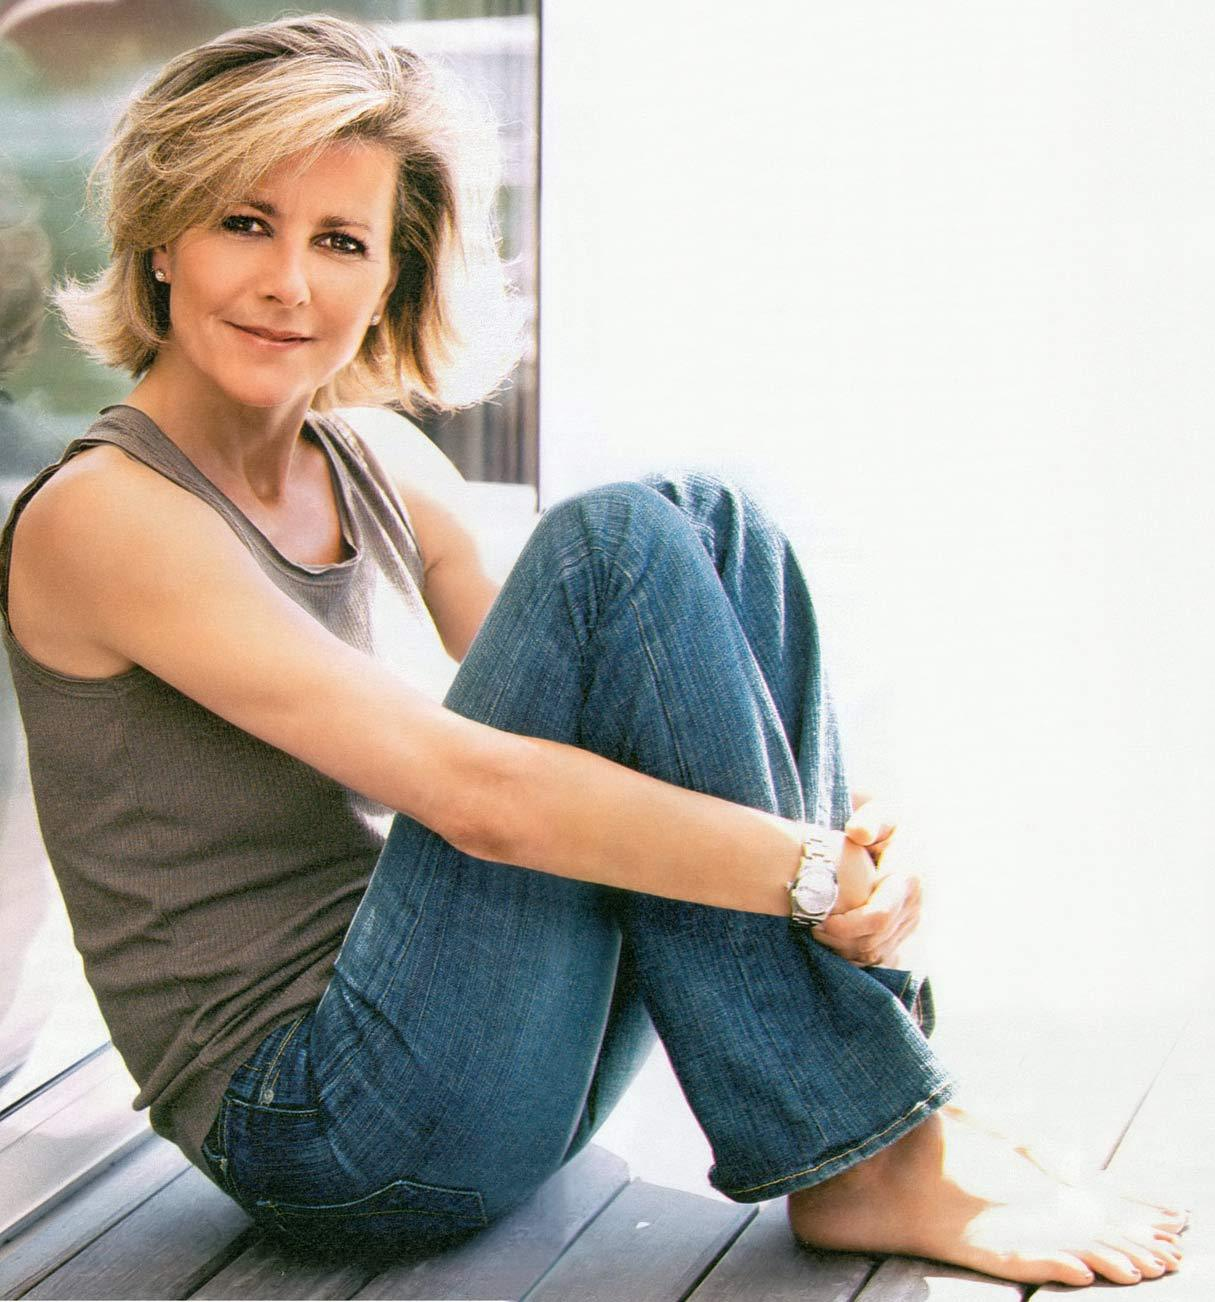 Claire Chazal nudes (35 pics) Video, Facebook, braless